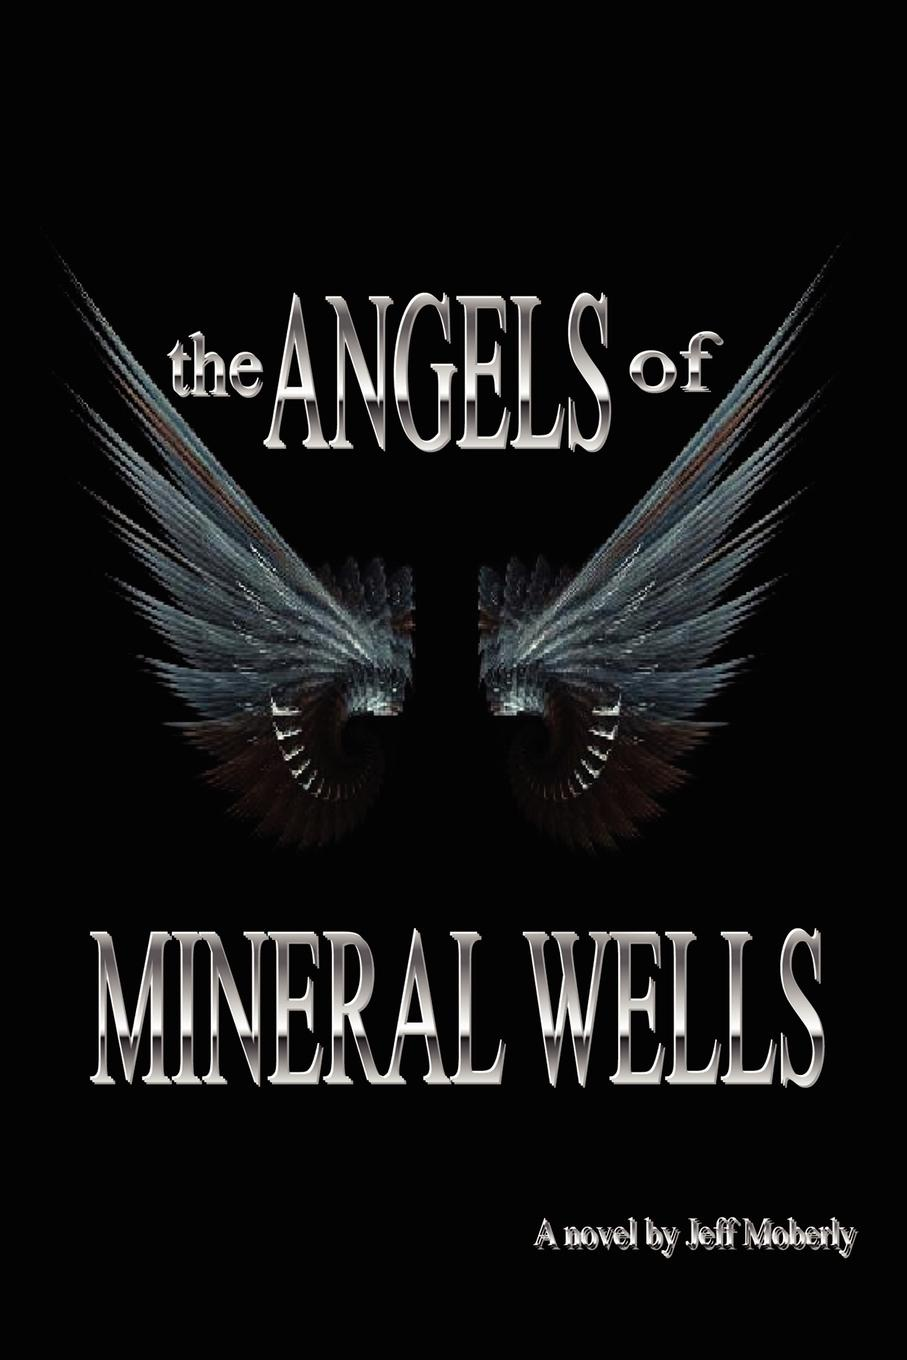 Jeff Moberly The Angels of Mineral Wells